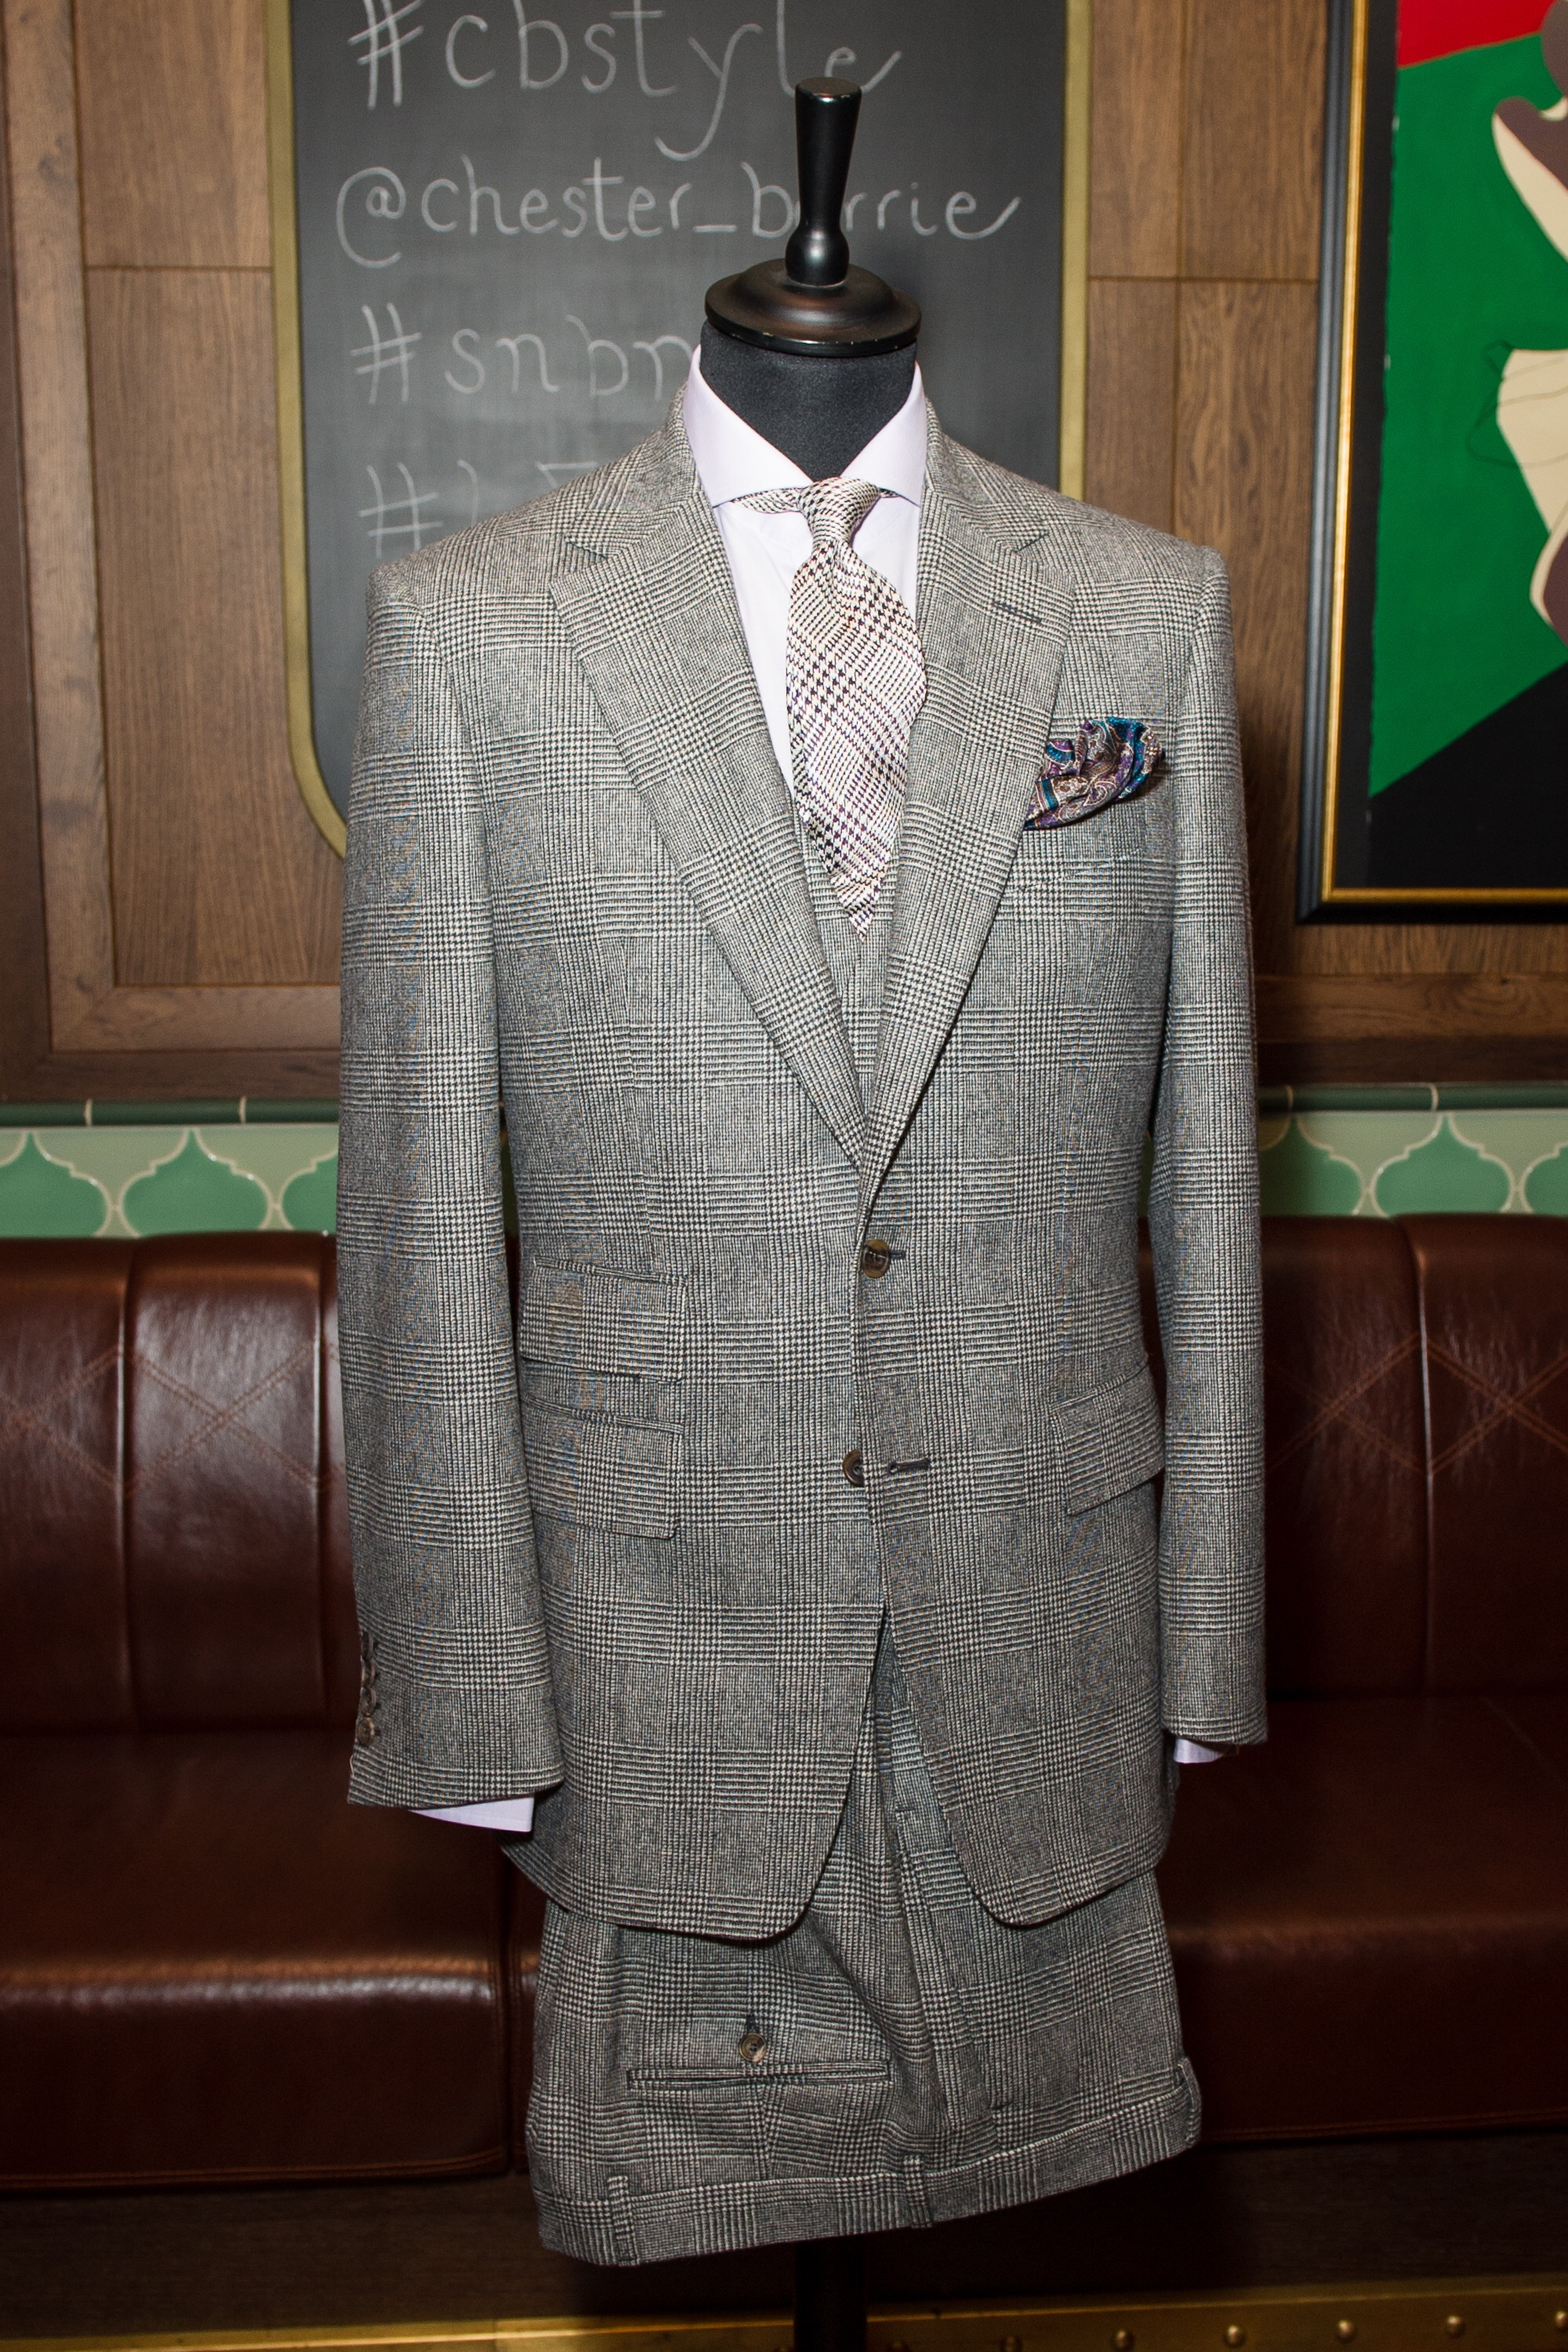 Eastleigh 3pce suit. single breasted with ticket pocket and double breasted vest.